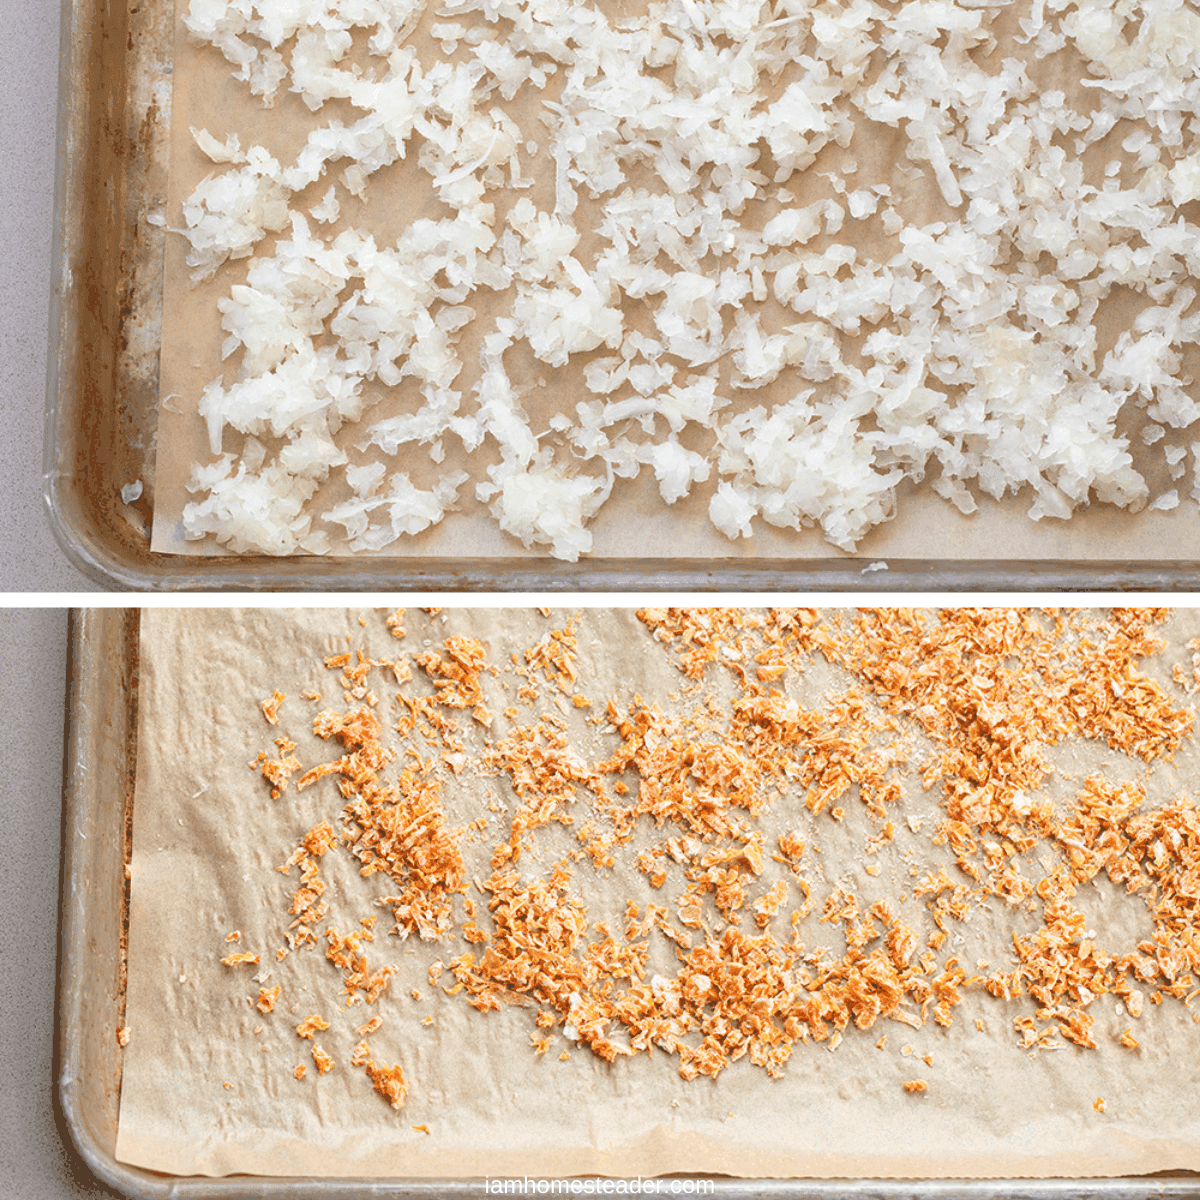 Process images of raw and dried onions on baking sheet